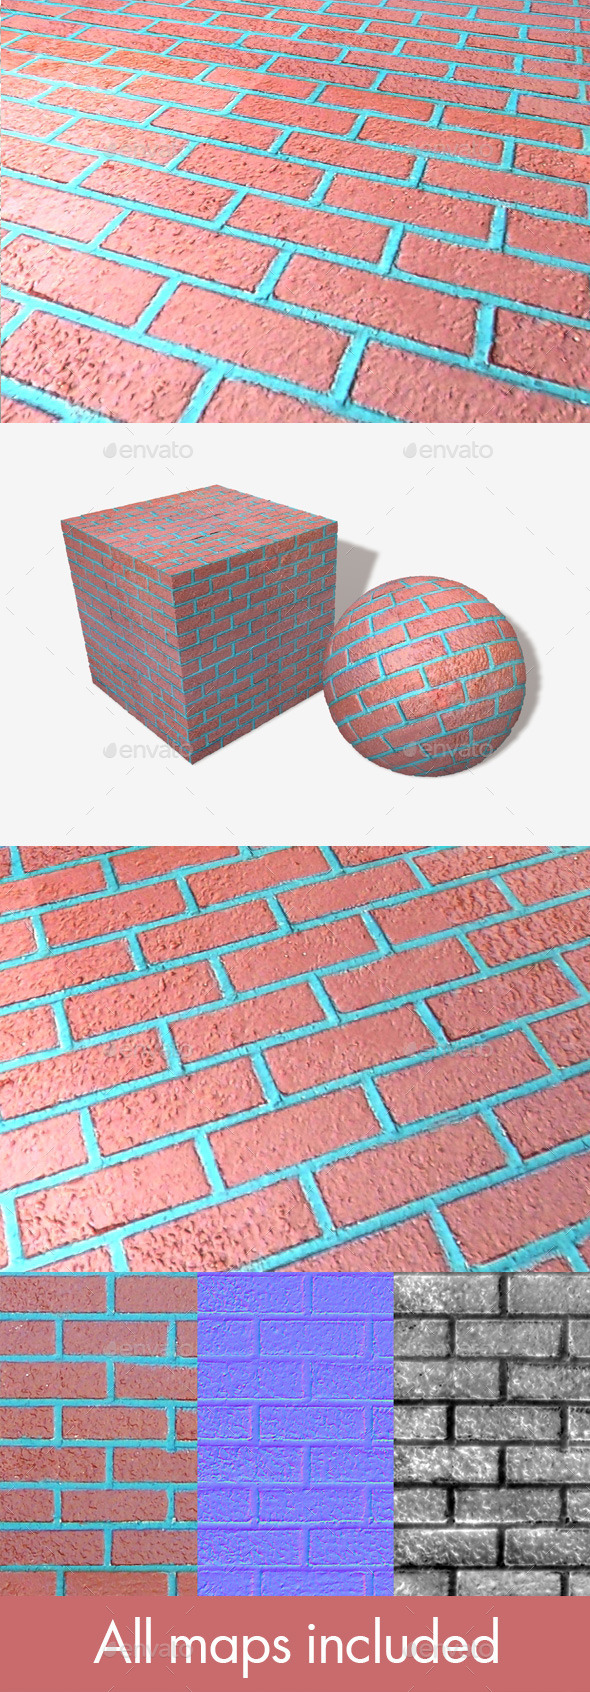 Fake Brick Seamless Texture - 3DOcean Item for Sale